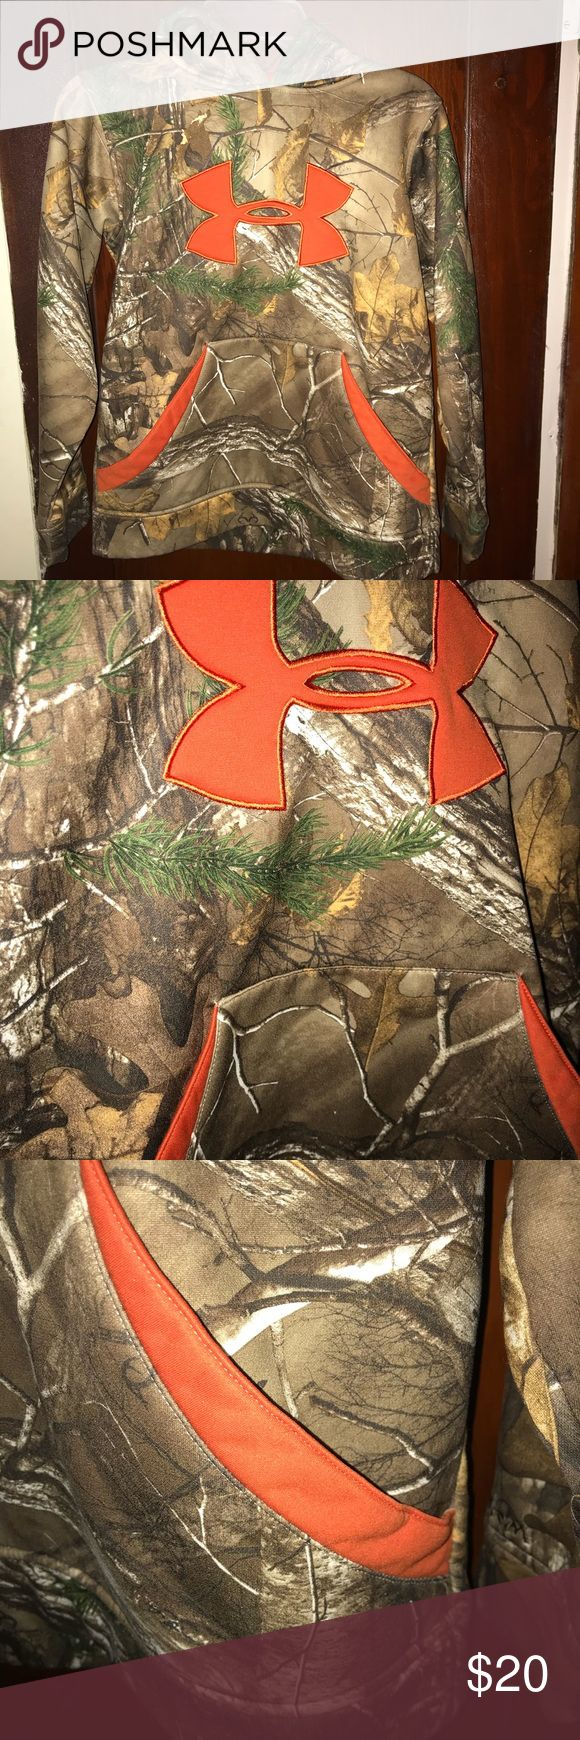 Boys camouflage under armour hoodie Real tree camo with hunter orange logo and trim  Size youth small  No damage, has been washed and worn Under Armour Shirts & Tops Sweatshirts & Hoodies